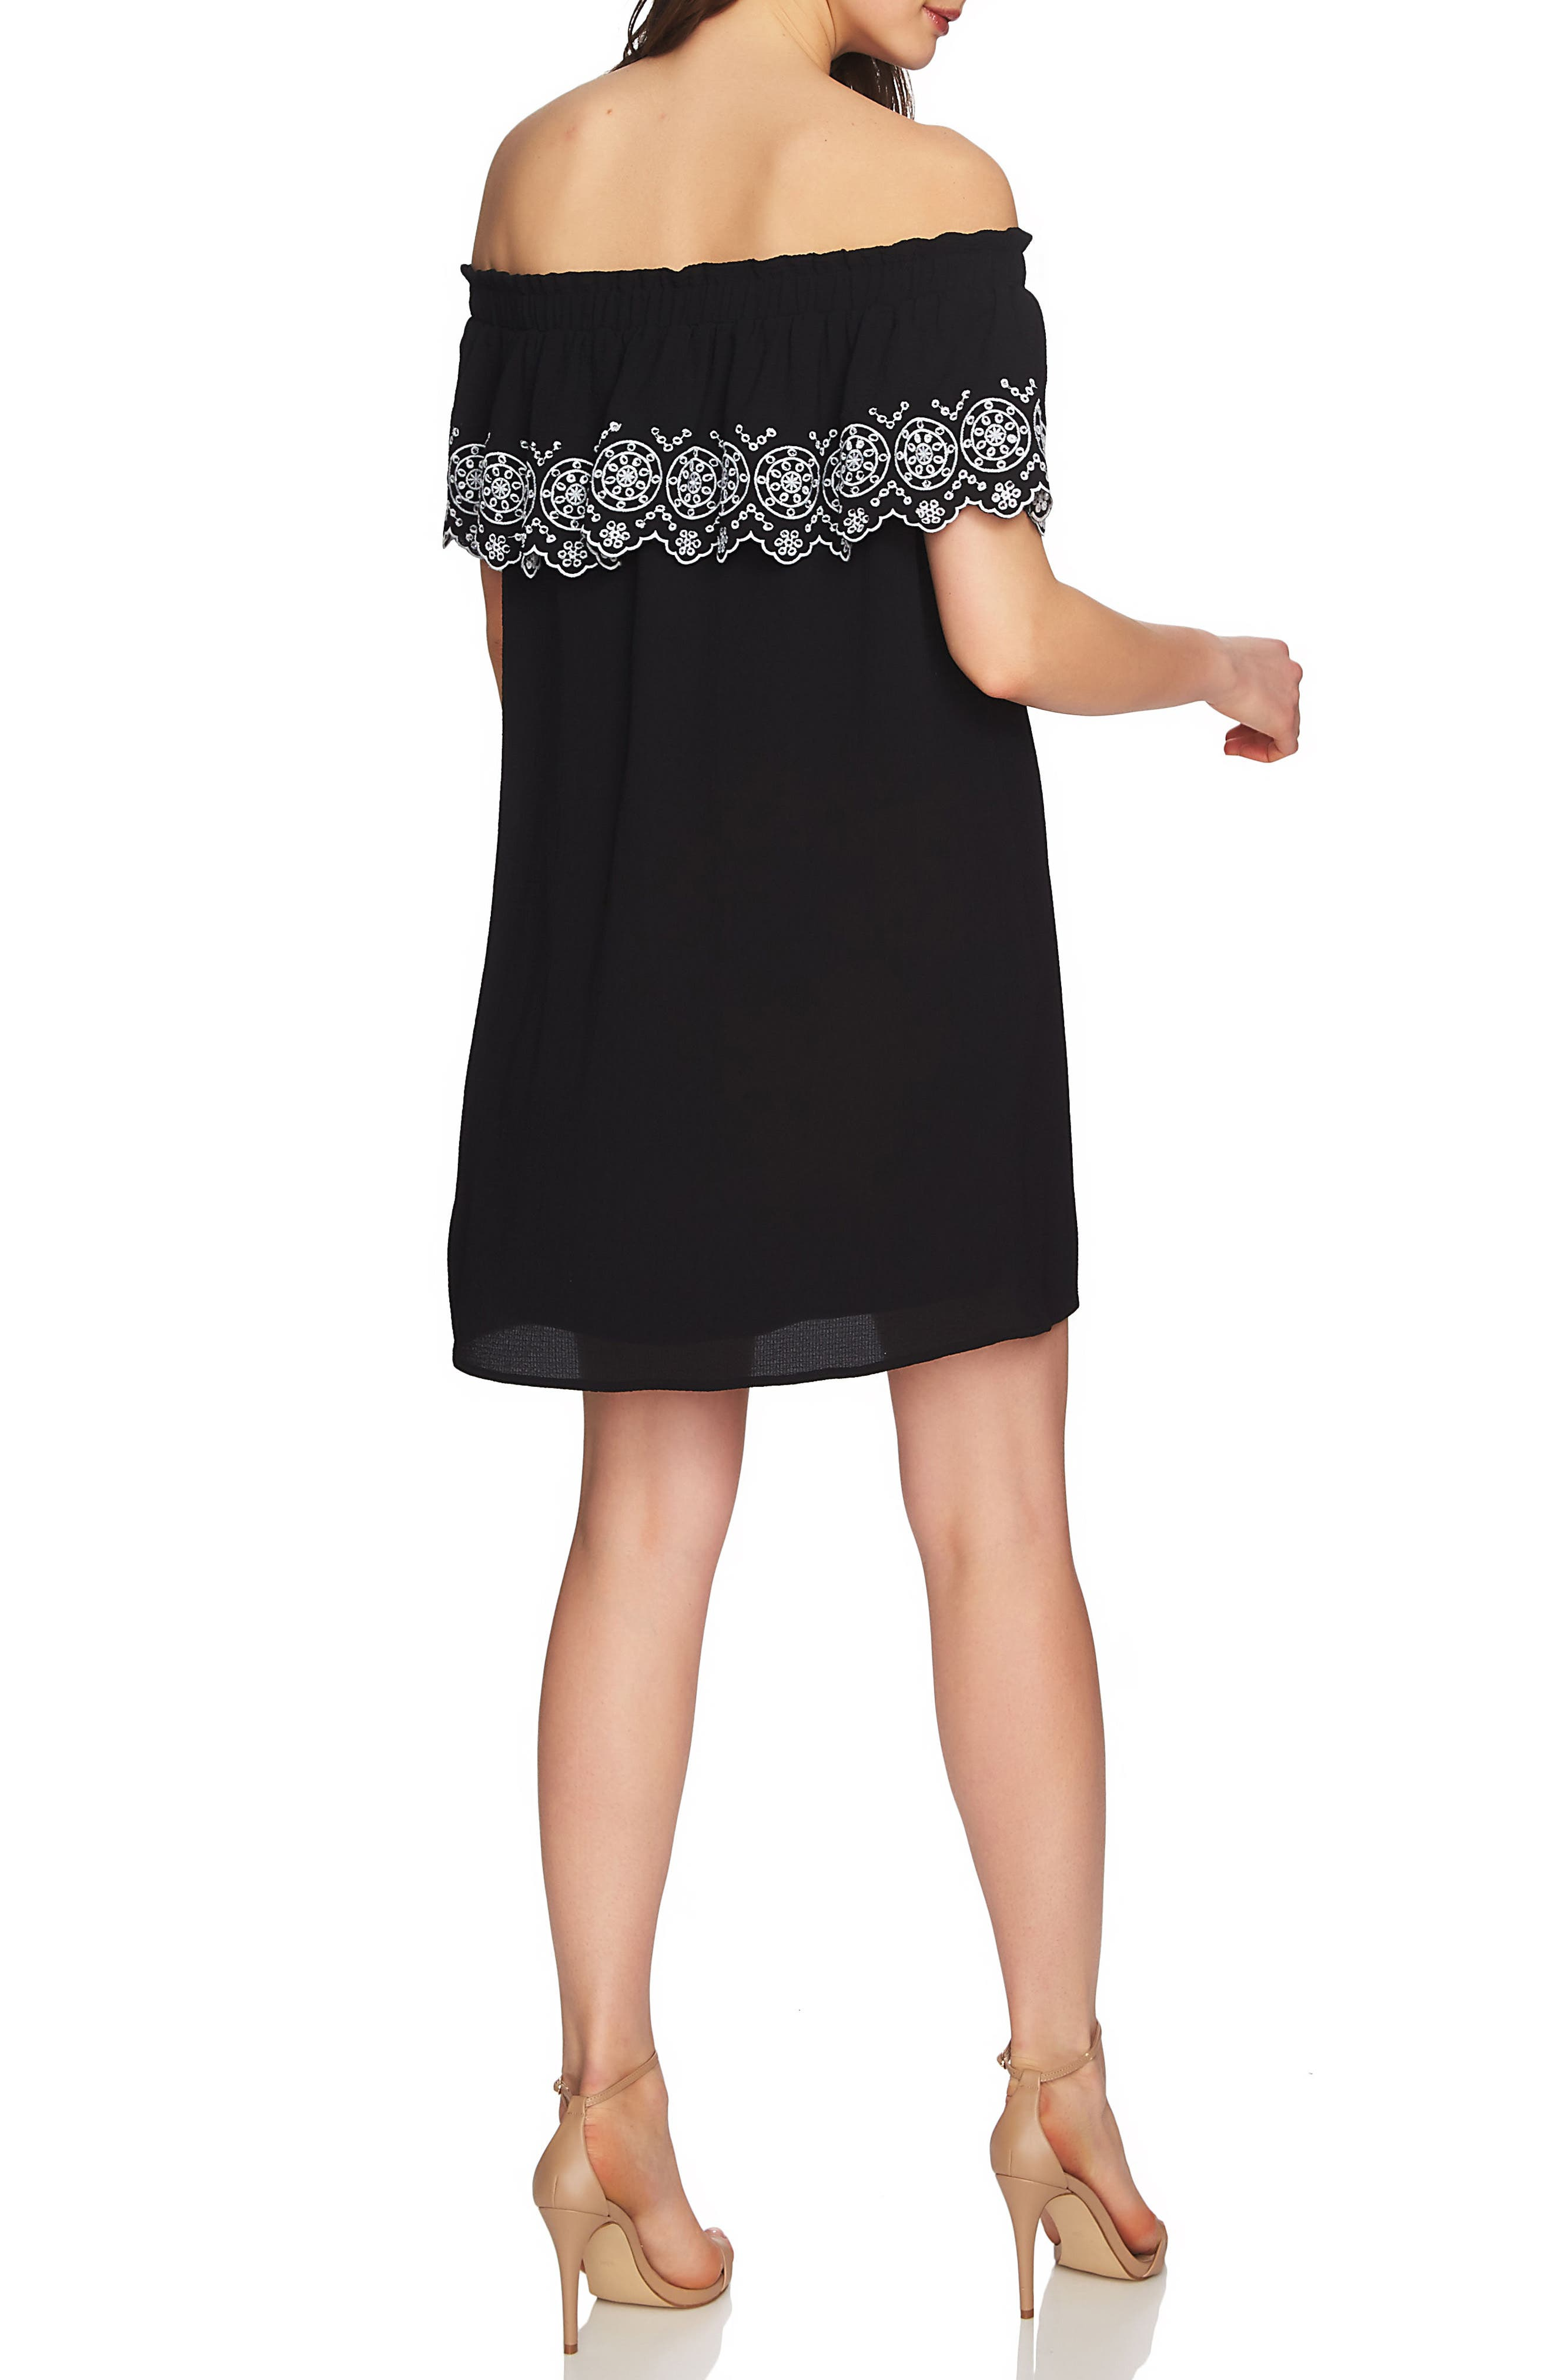 Tenley Off the Shoulder Embroidered Dress,                             Alternate thumbnail 2, color,                             001